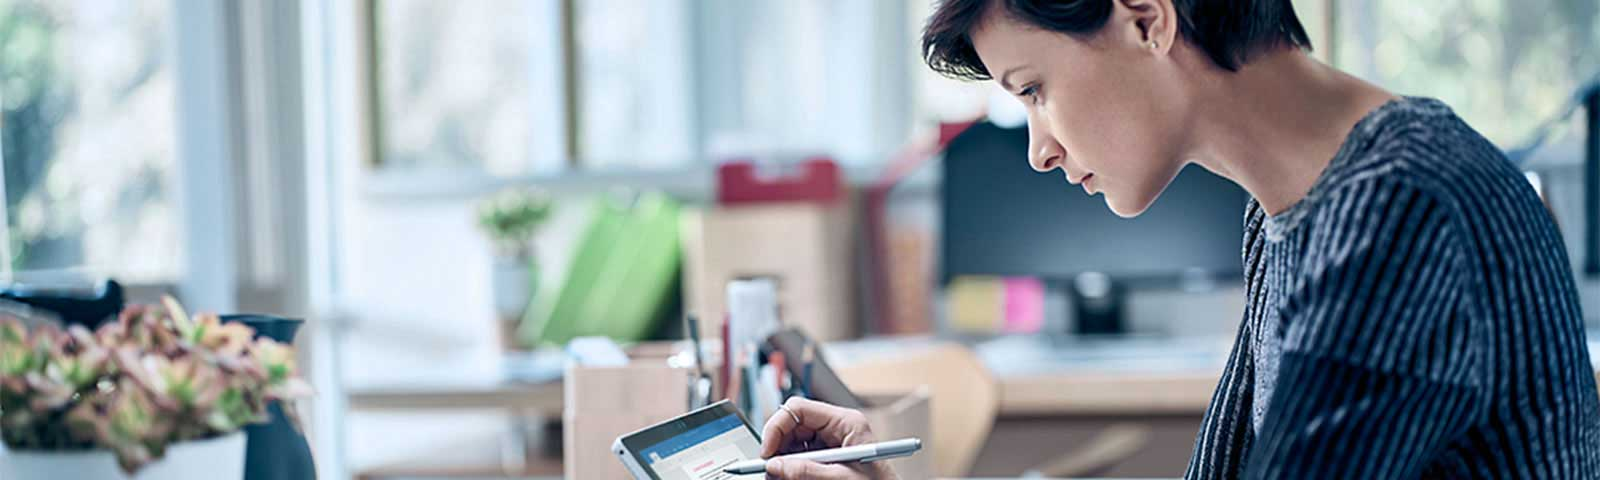 Woman using pen on surface tablet at desk